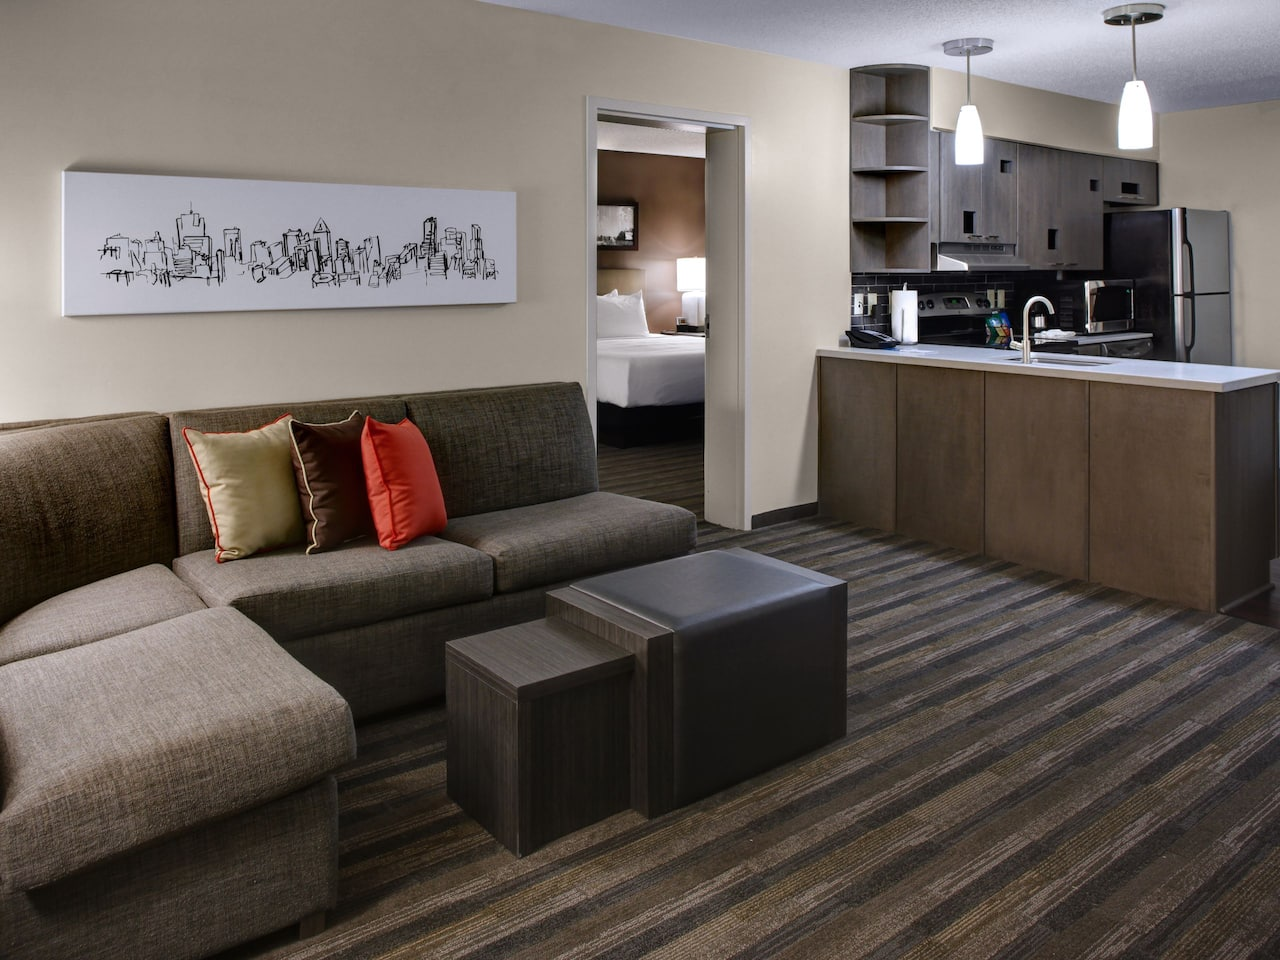 Two Bedroom Living Room Hyatt House Atlanta/Cobb Galleria